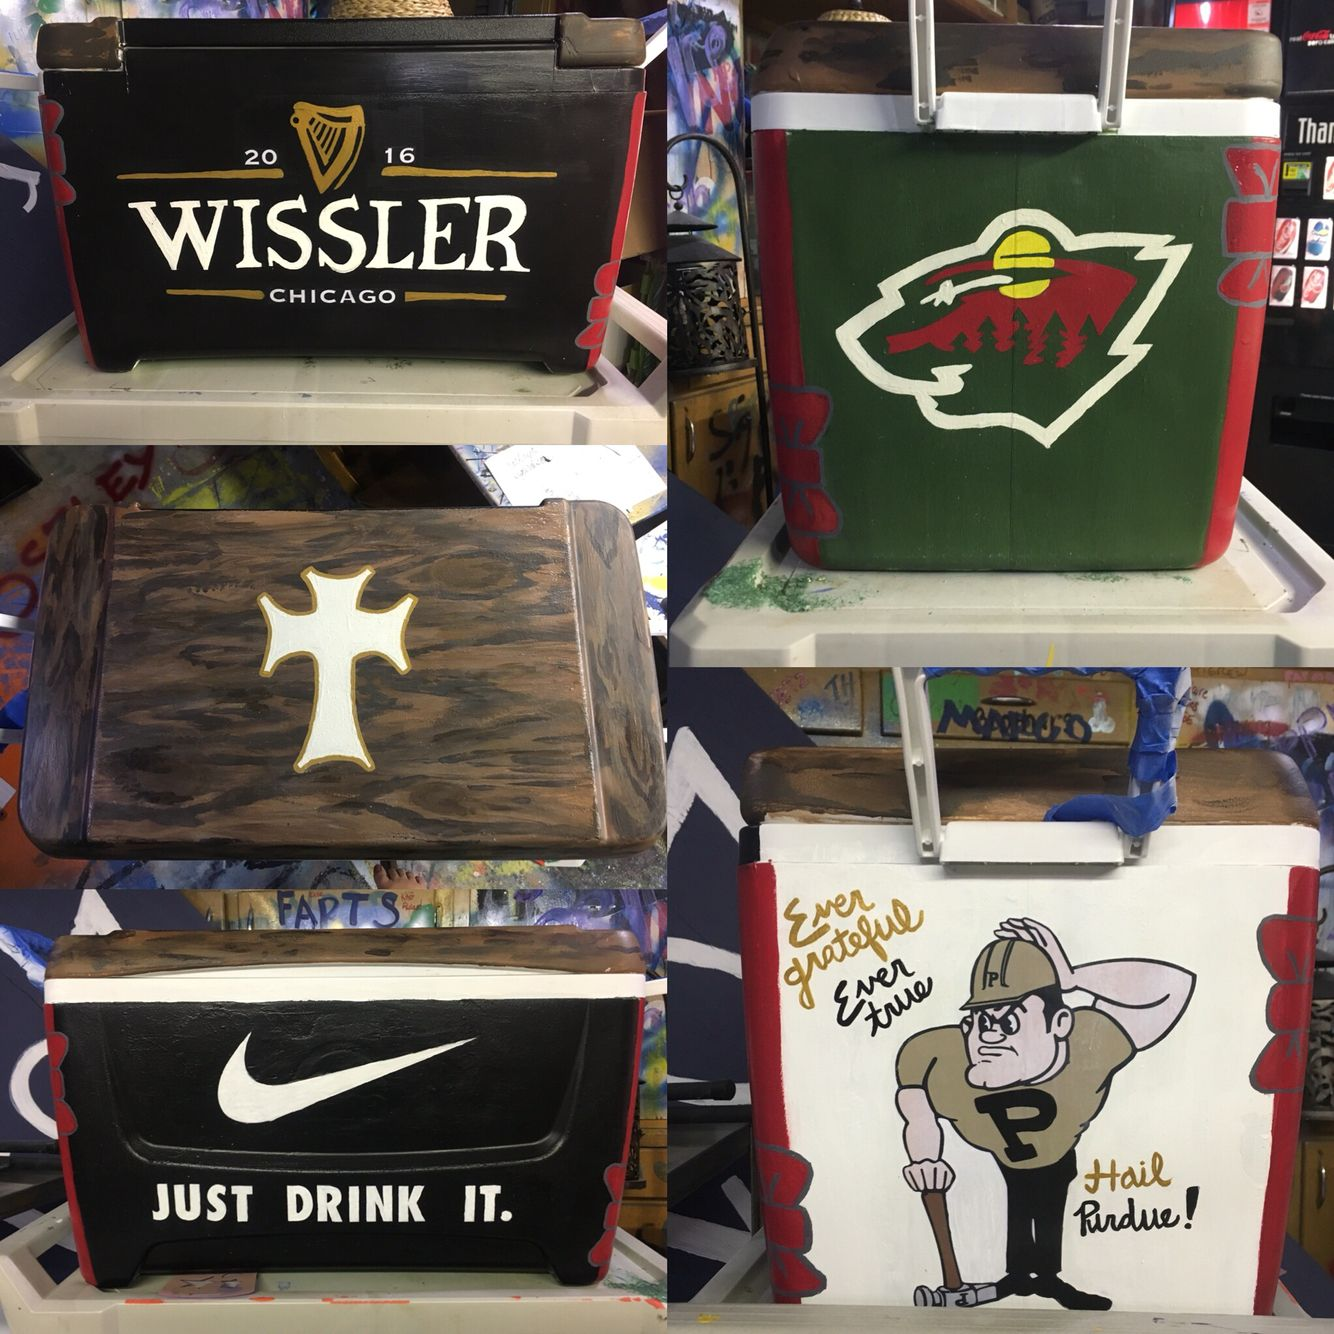 Color printing purdue - Fraternity Cooler Purdue Sigma Chi Crafting